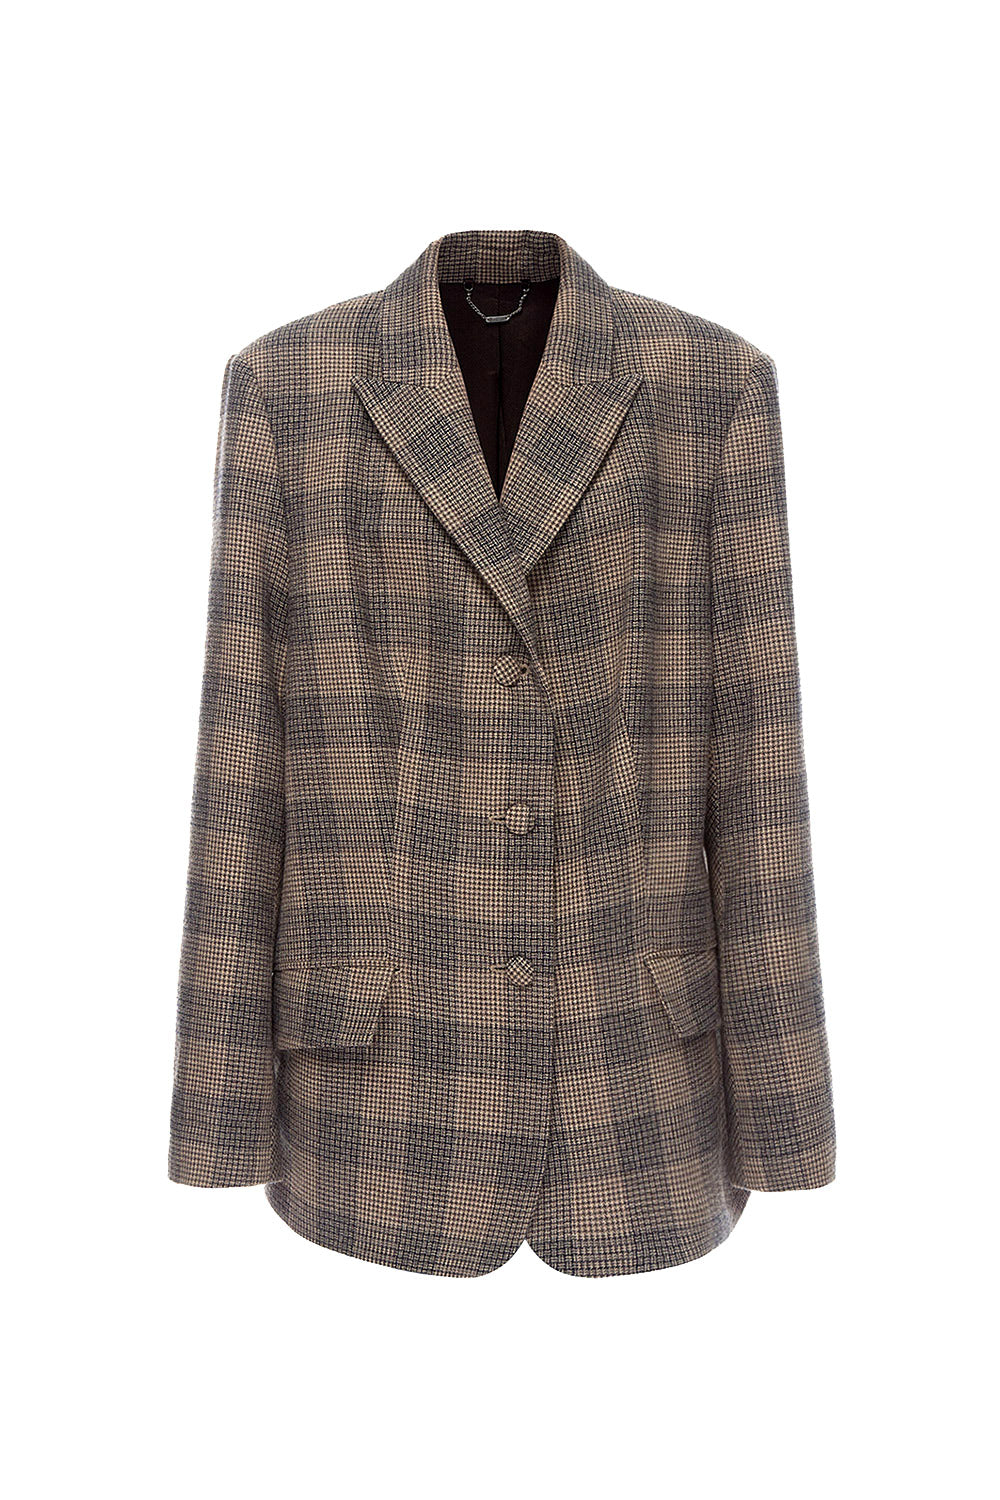 Beige Woolen Plaid Jacket